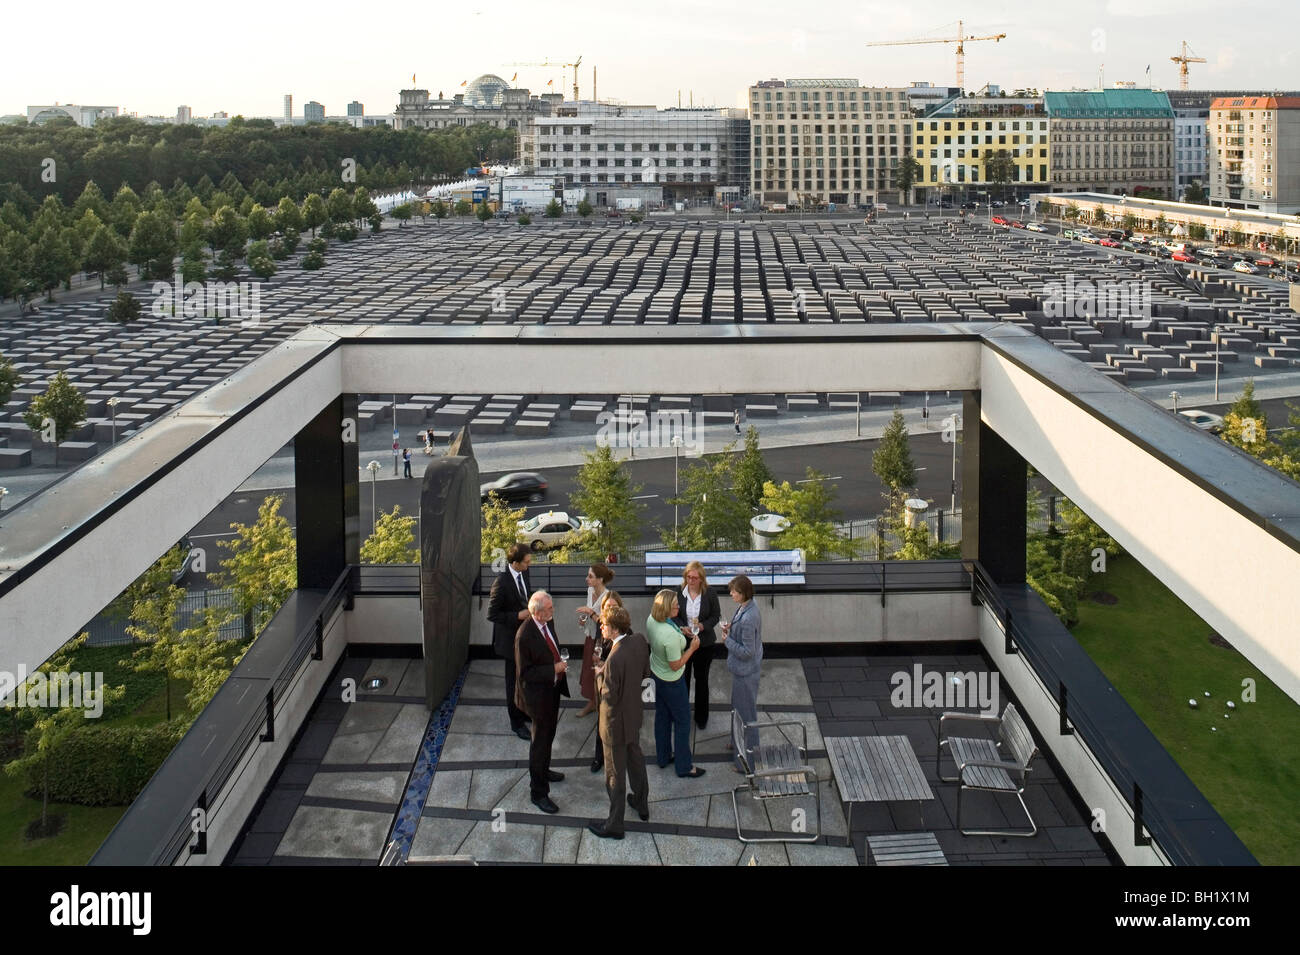 on the roof terrace of Representation of the State of Rheinland Pfalz in Berlin, opposite the Memorial to the Murdered - Stock Image